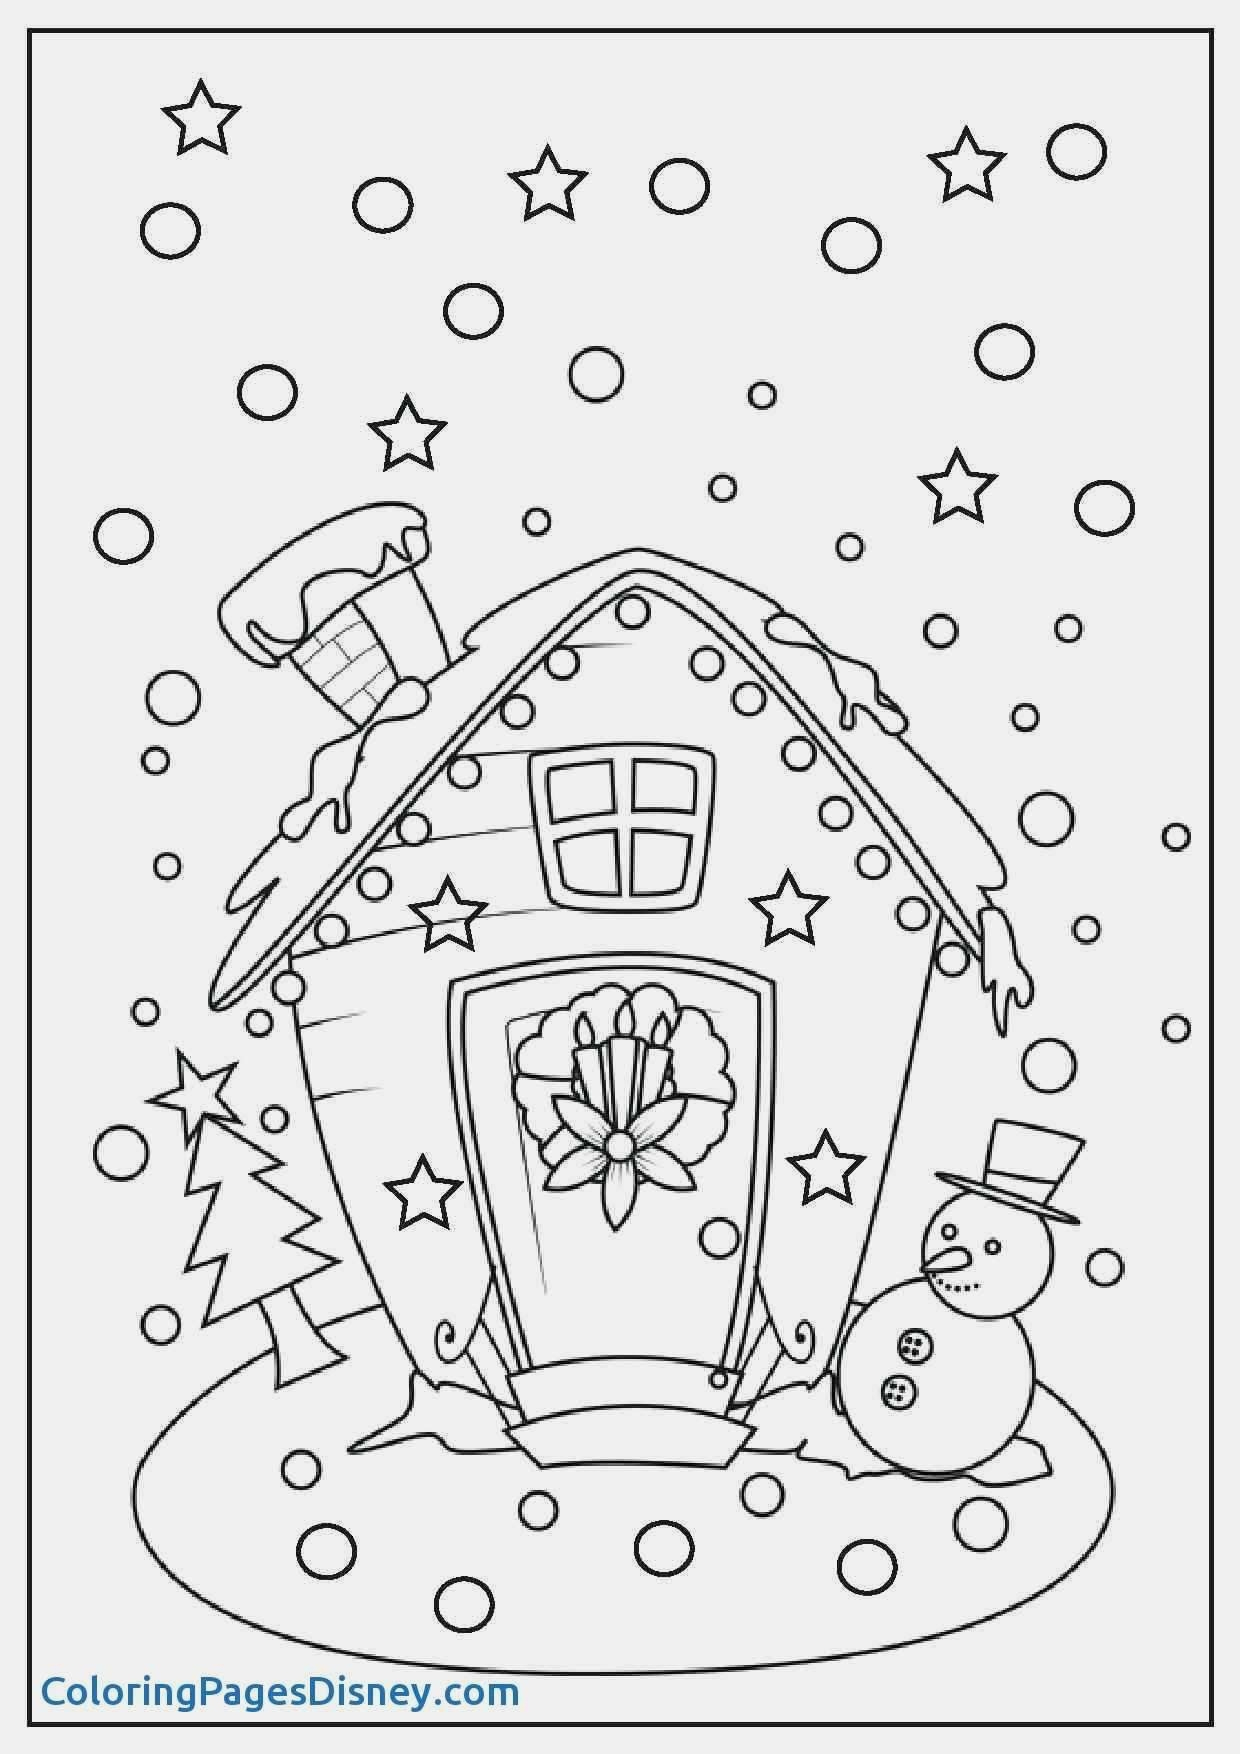 hello kitty free printable coloring pages Collection-Hello Kitty Printable Coloring Pages Printable Printable Hello Kitty Christmas Coloring Pages Cool Coloring Pages 12-h